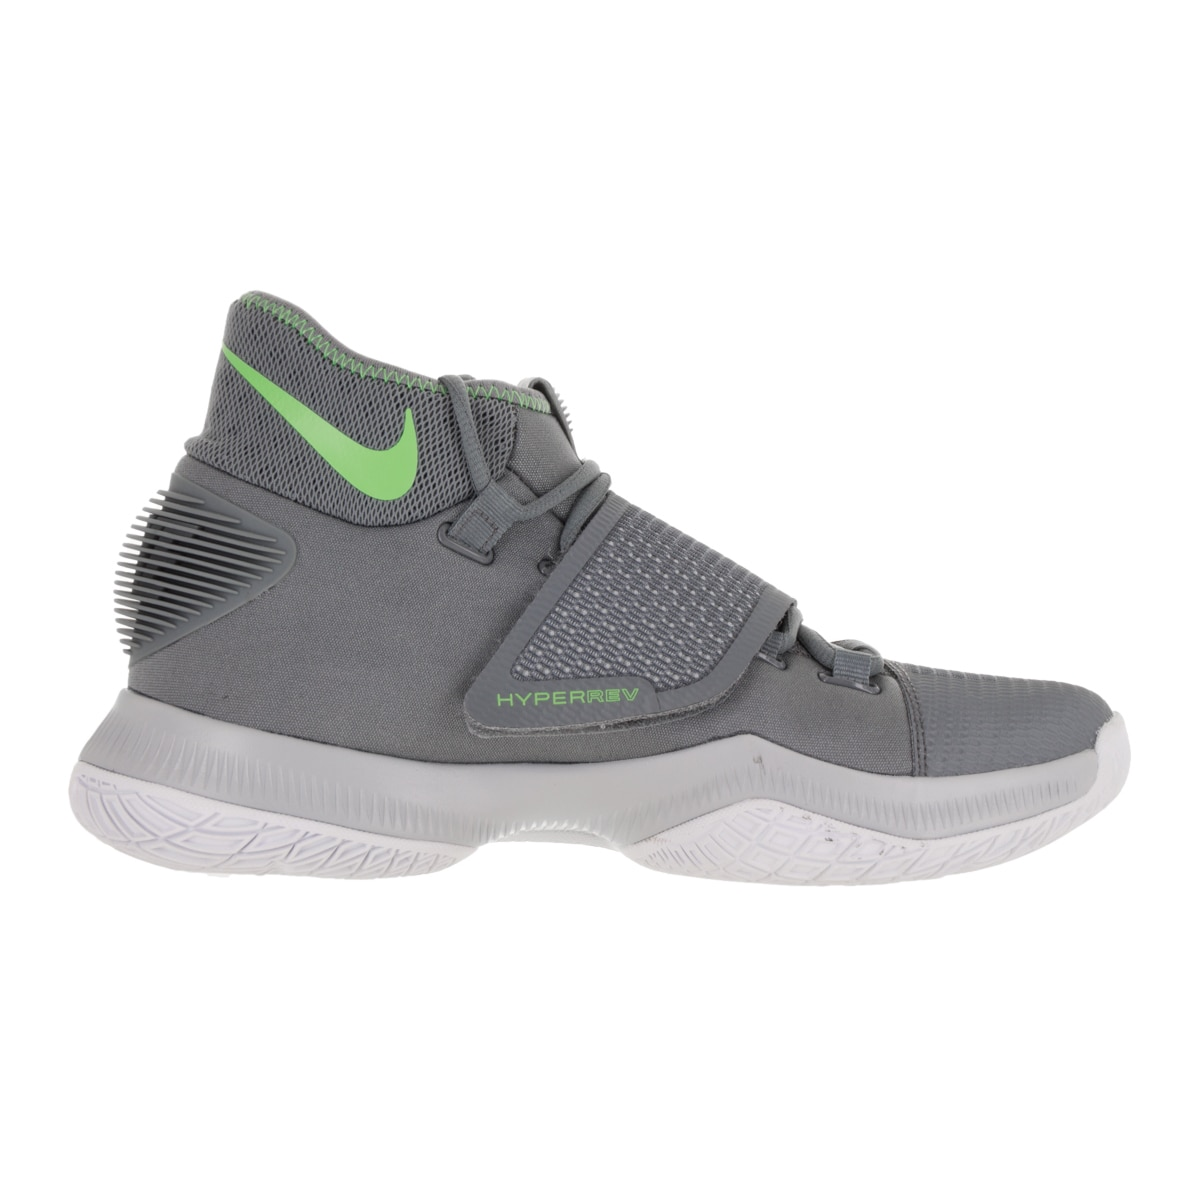 huge discount f5ac0 91676 ... white metallic gold mens womens sneaker for sale 68493 b3570  low price  shop nike mens zoom hyperrev 2016 cool grey action green wlf gry basketball  shoe